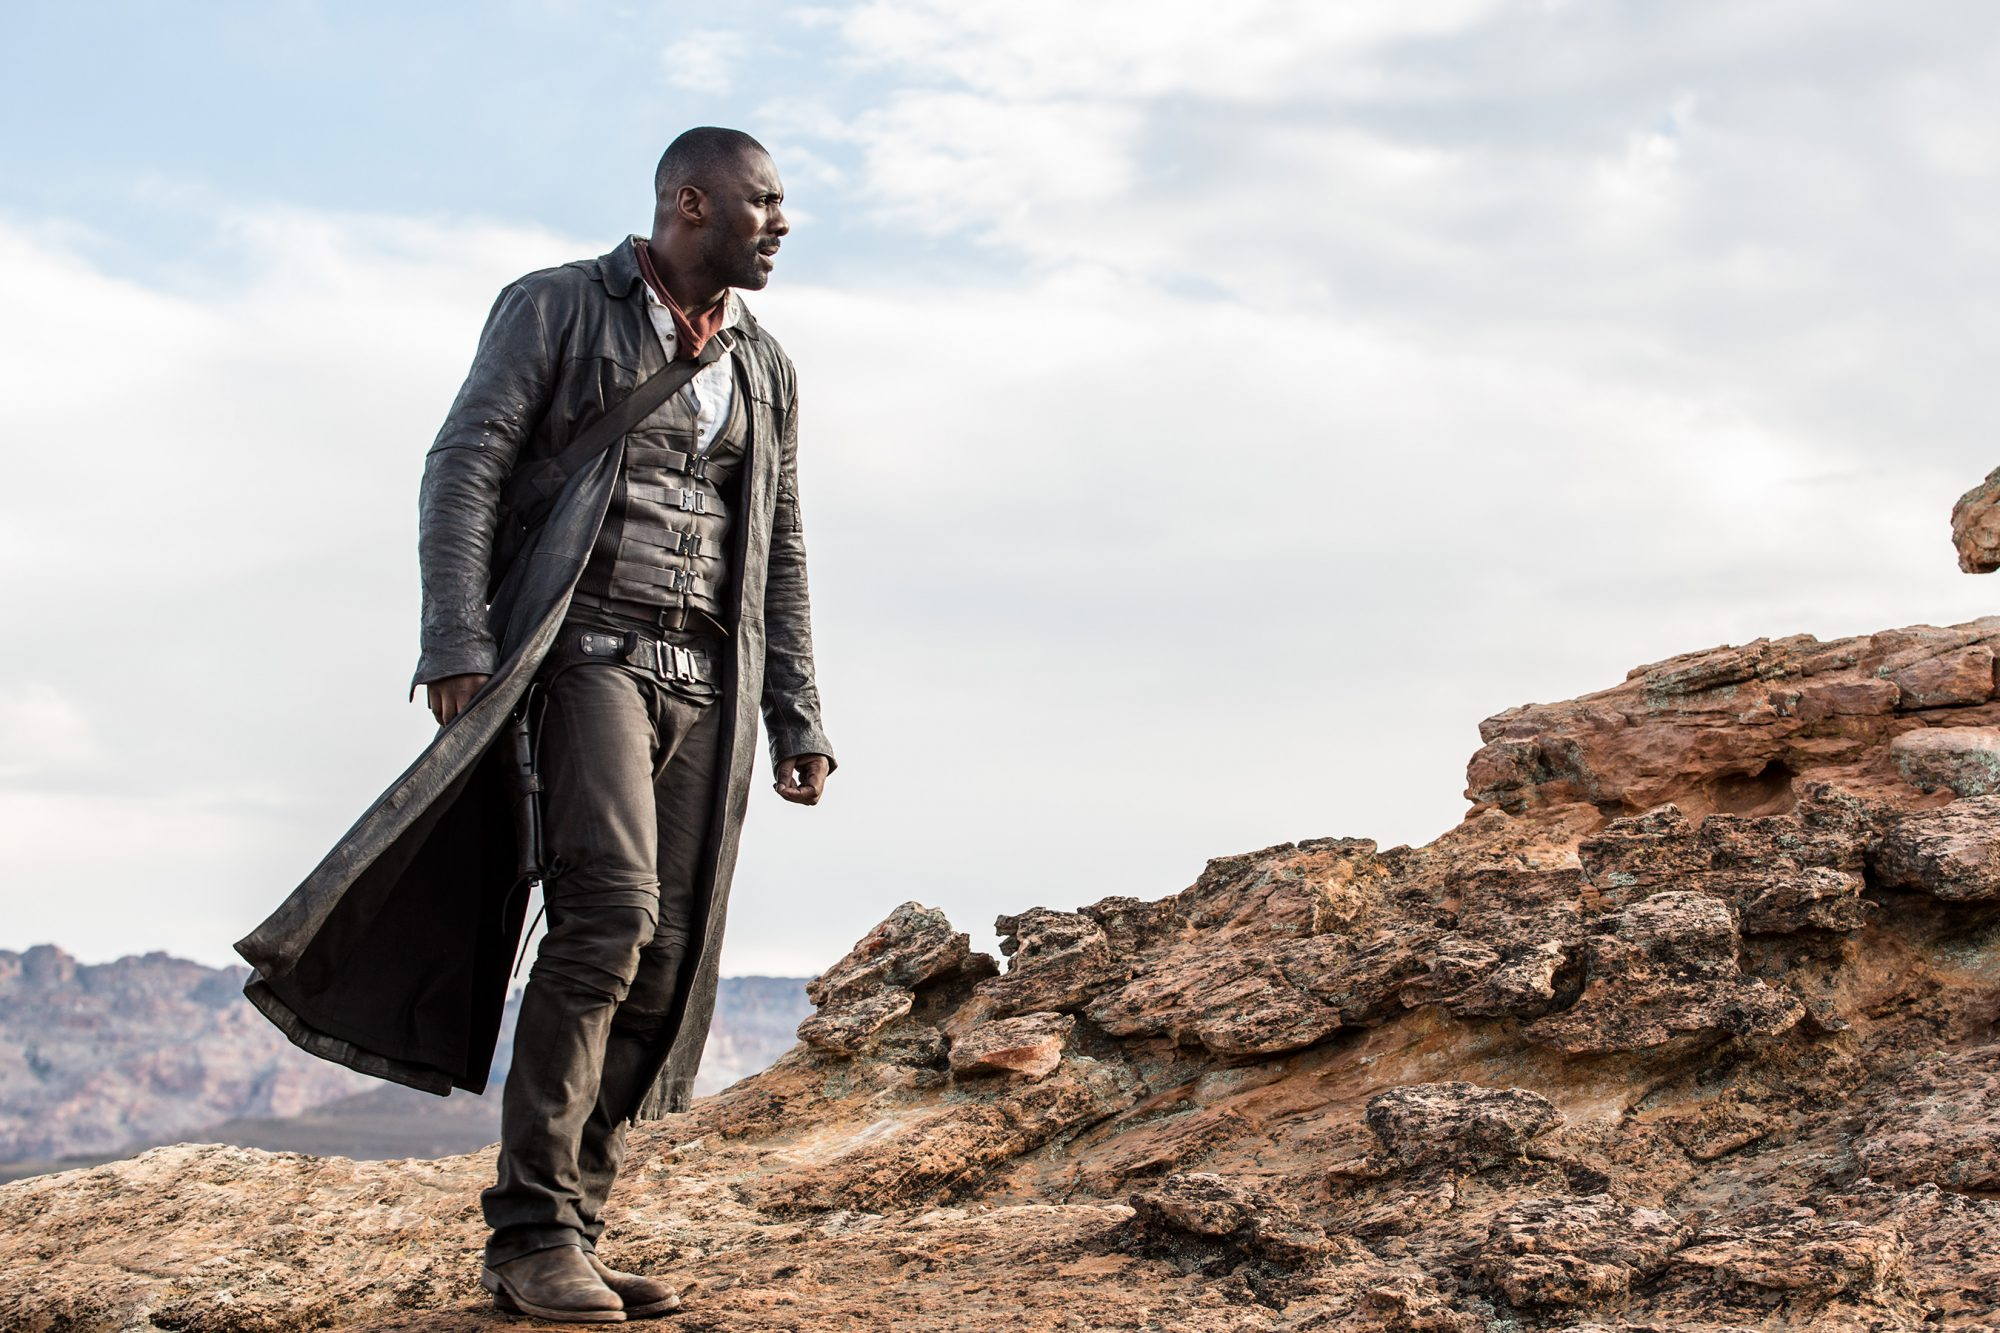 WORST: 5. The Dark Tower (2017)